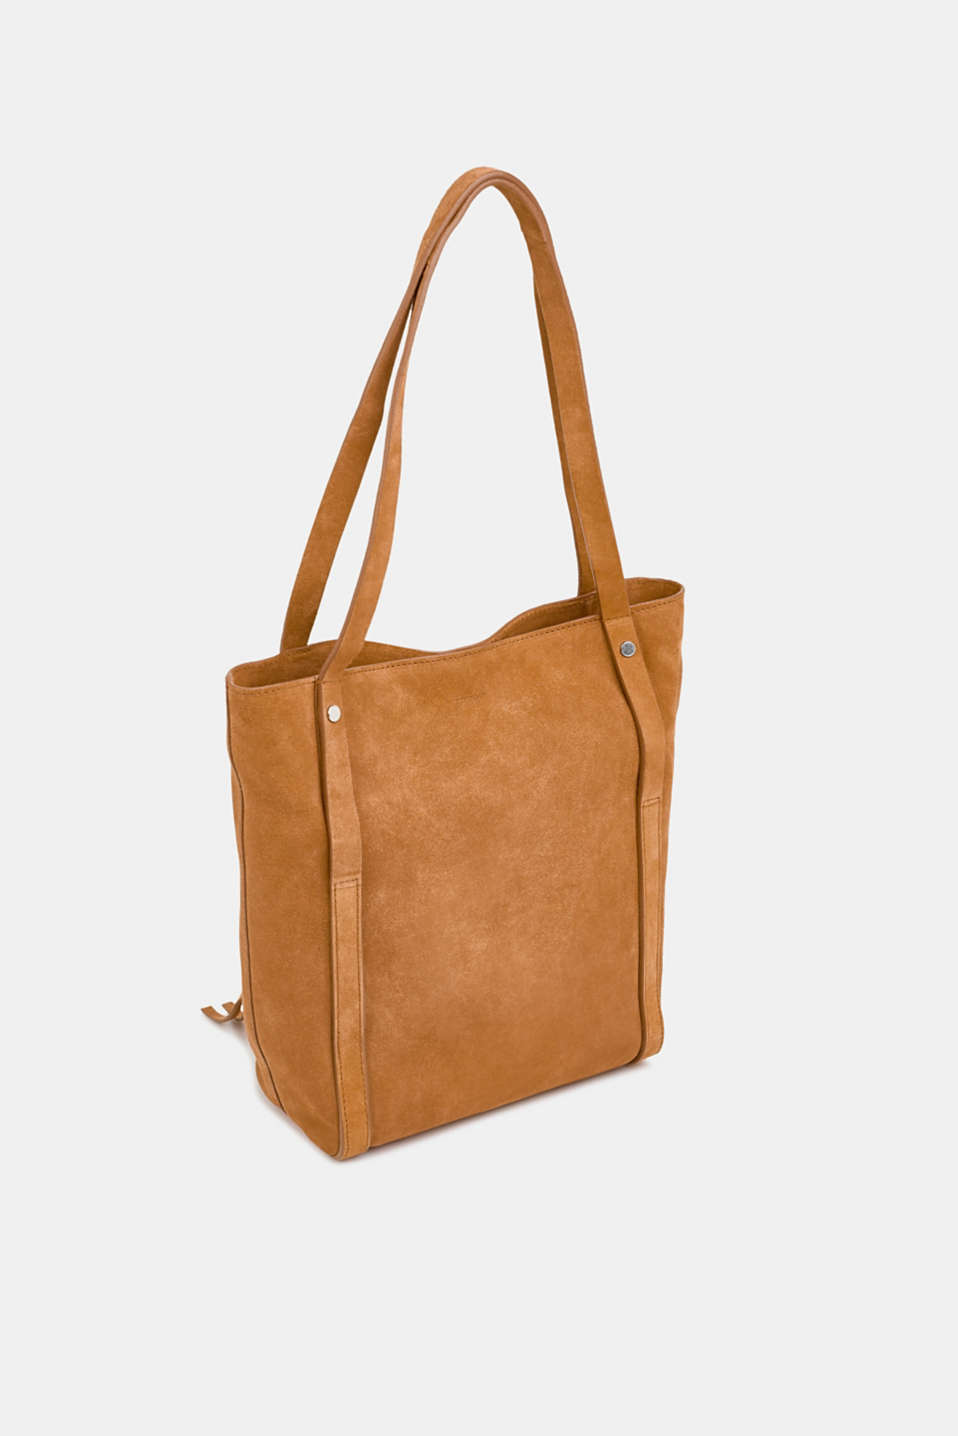 Leather tote bag, RUST BROWN, detail image number 5